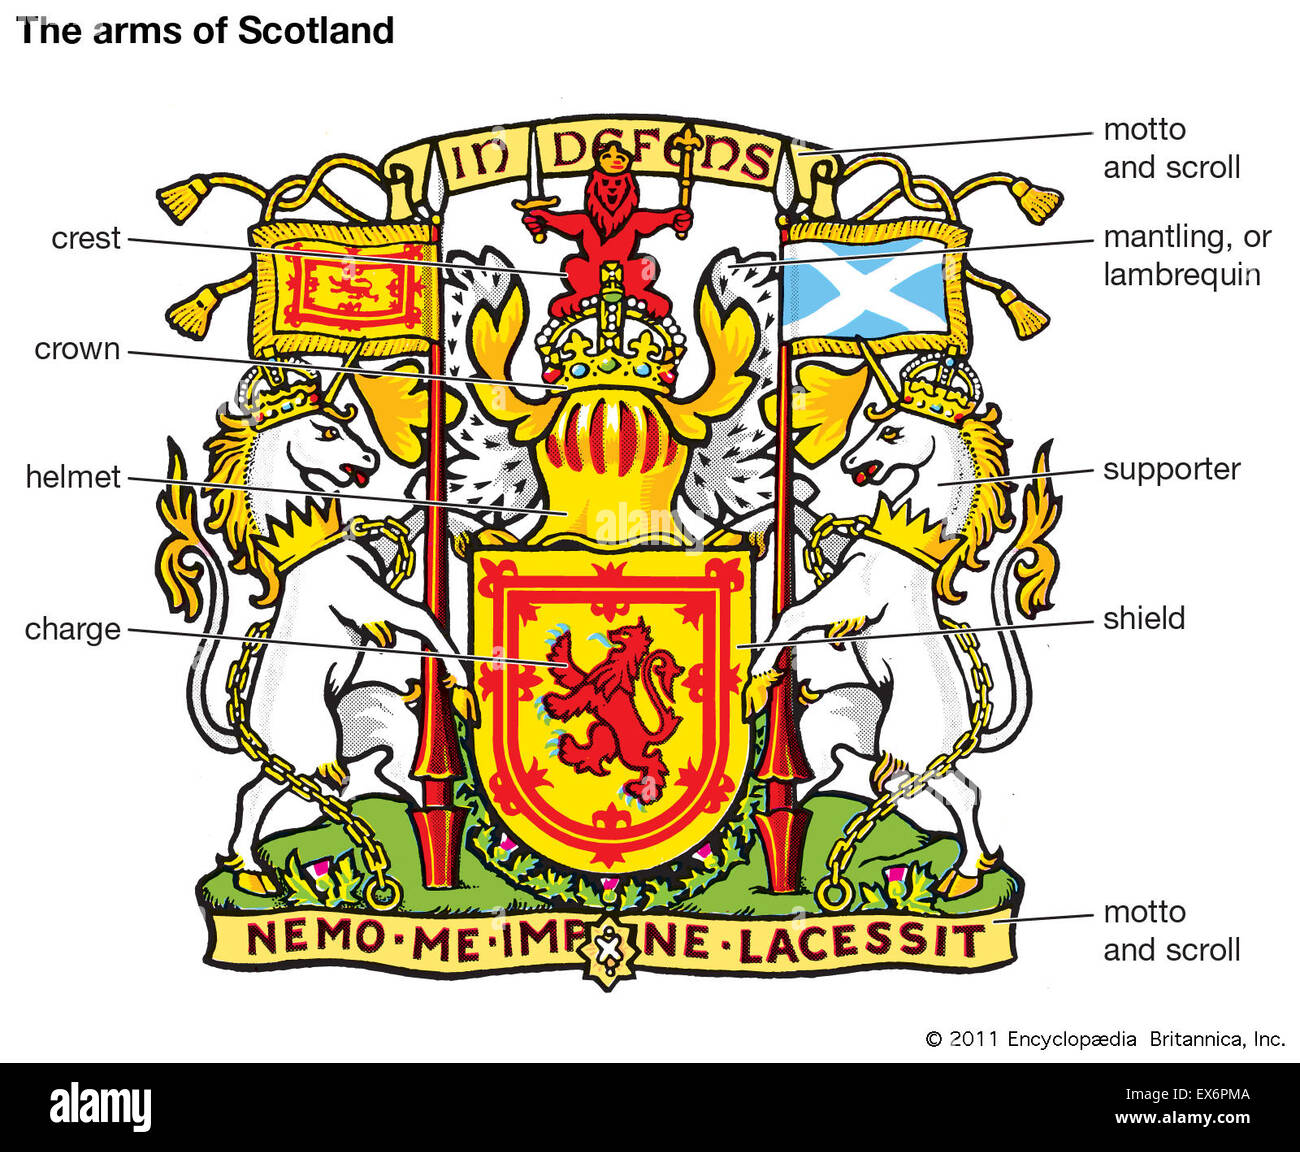 Heraldry: the arms of Scotland - Stock Image